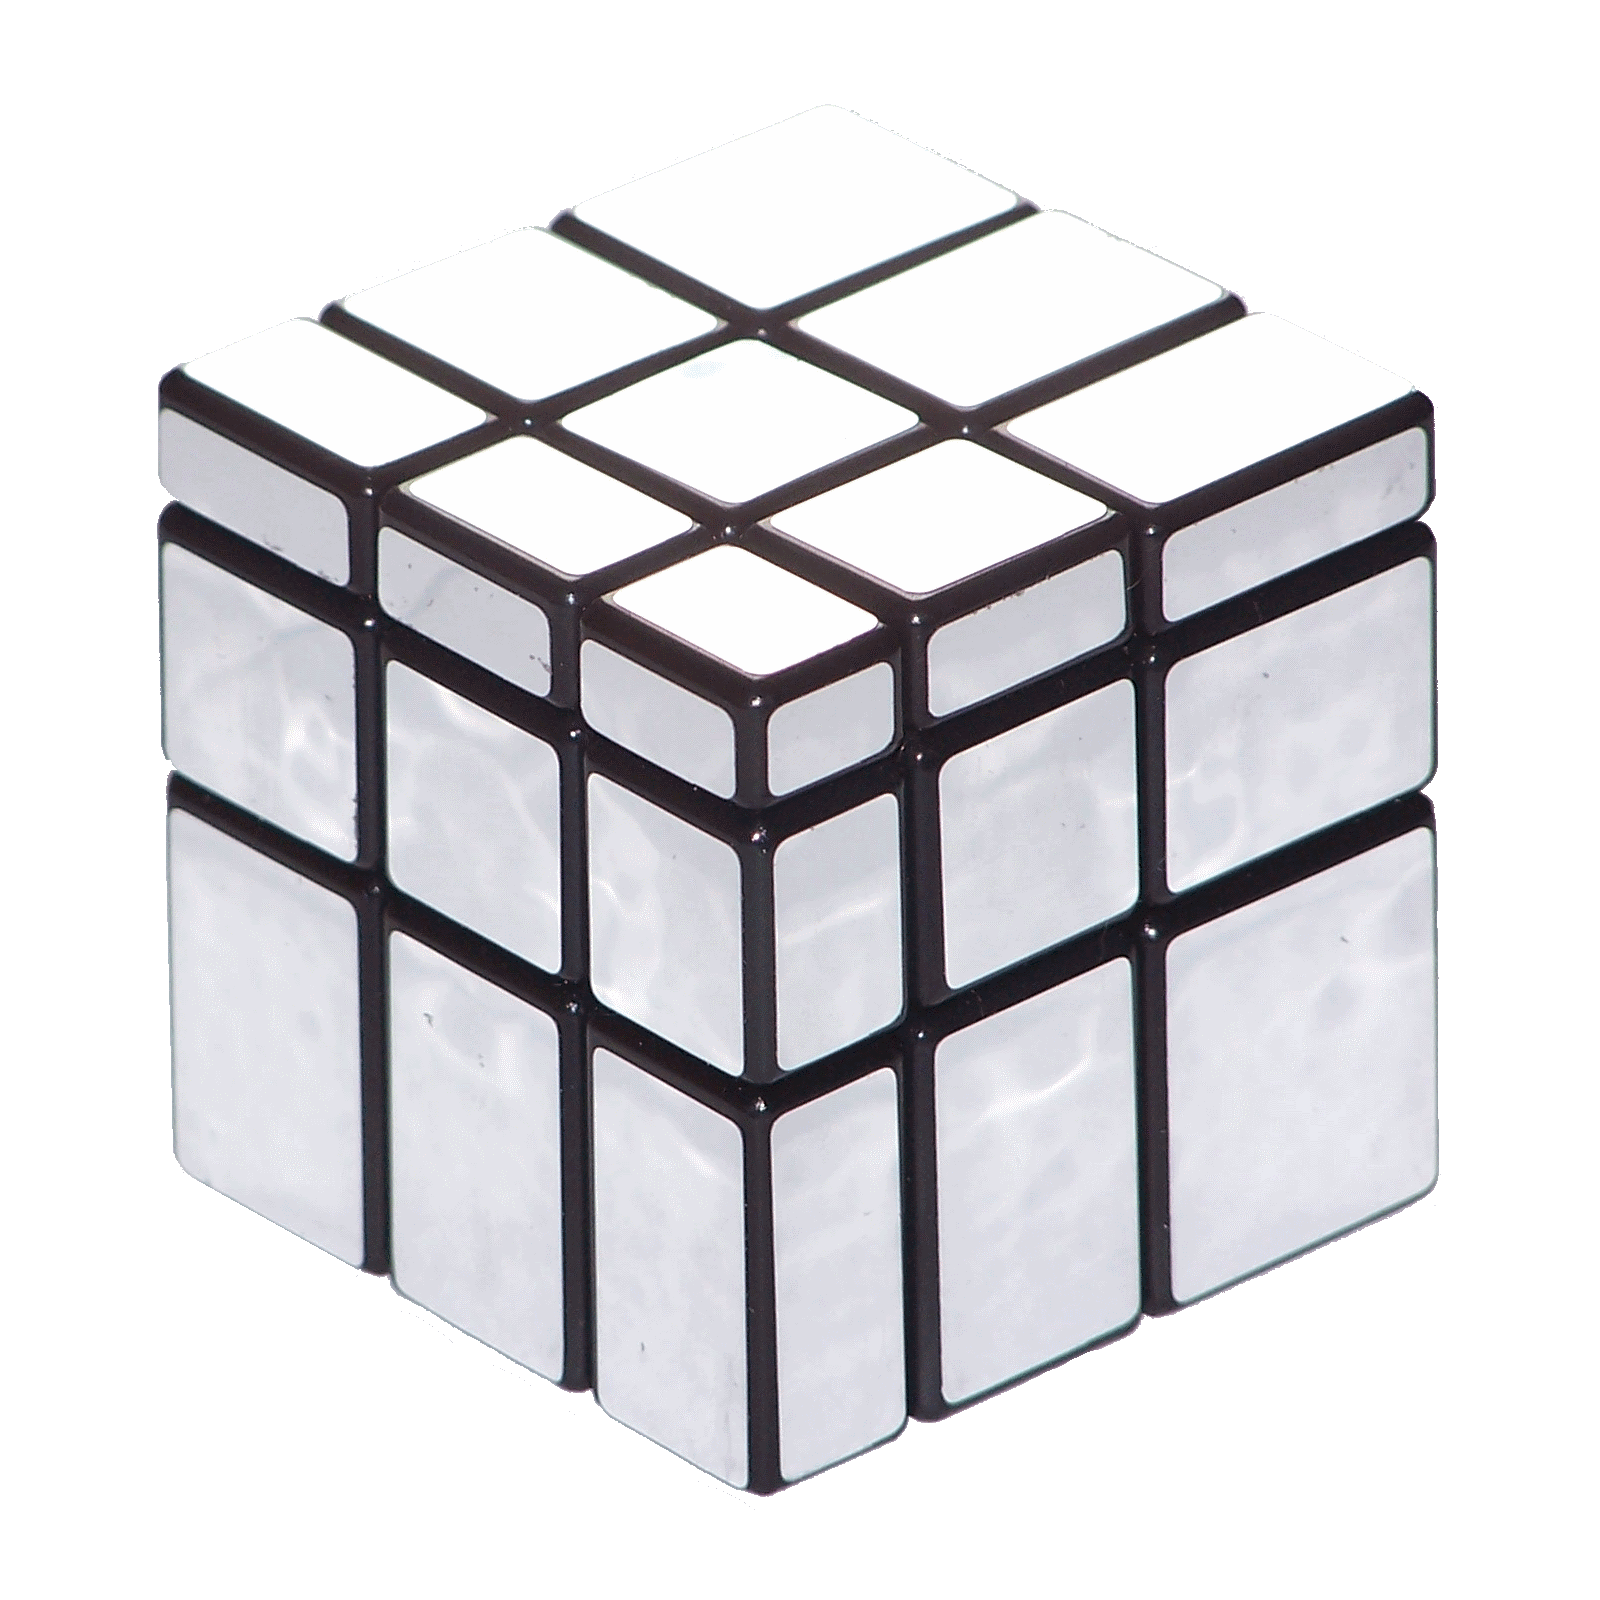 mirror cube images frompo